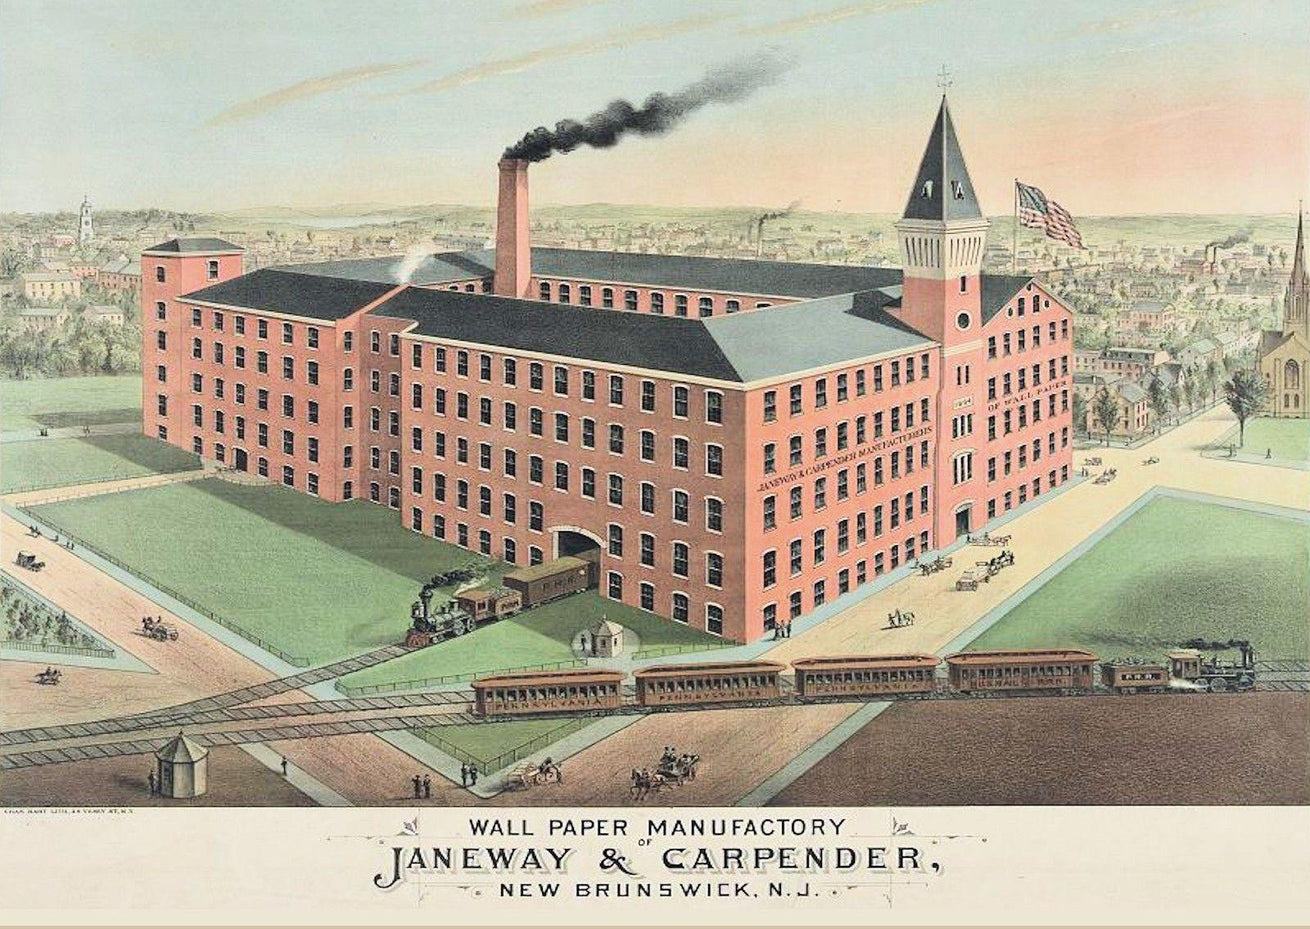 1870s Janeway & Carpender Factory, Library of Congress